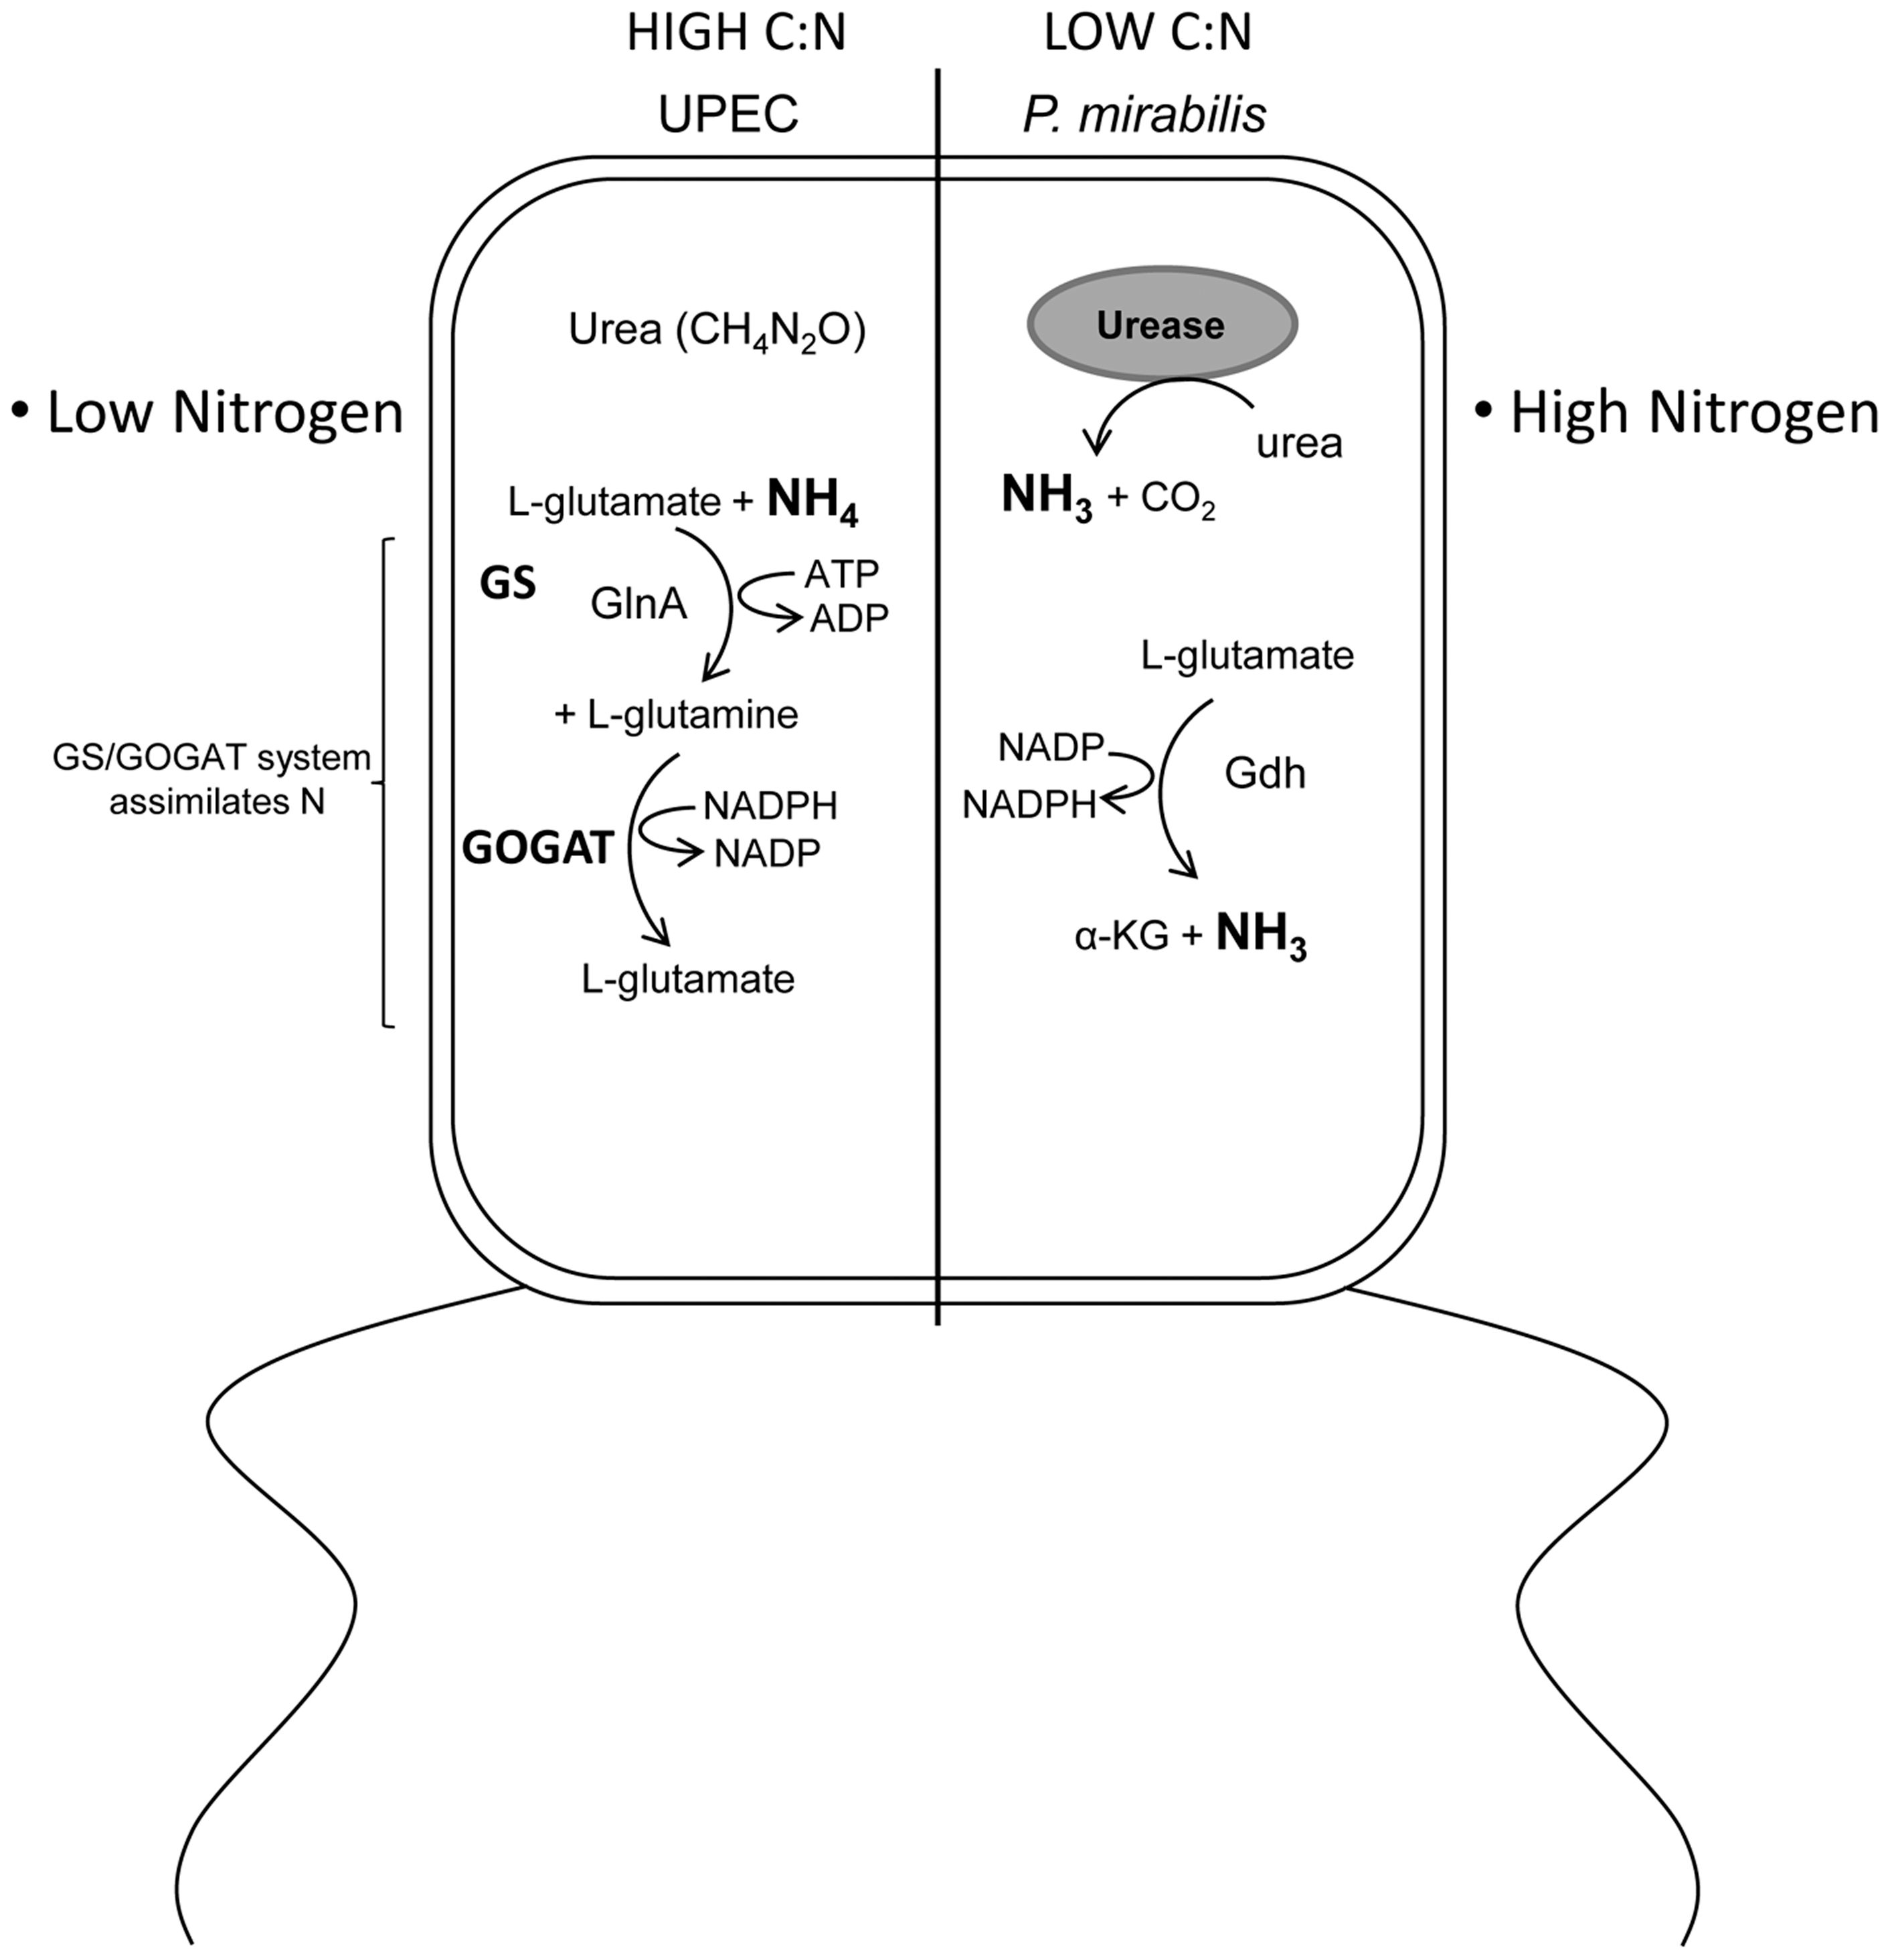 Model describing the differential effect of <i>E. coli</i> and <i>P. mirabilis</i> metabolism on the C/N ratio within the urinary tract.